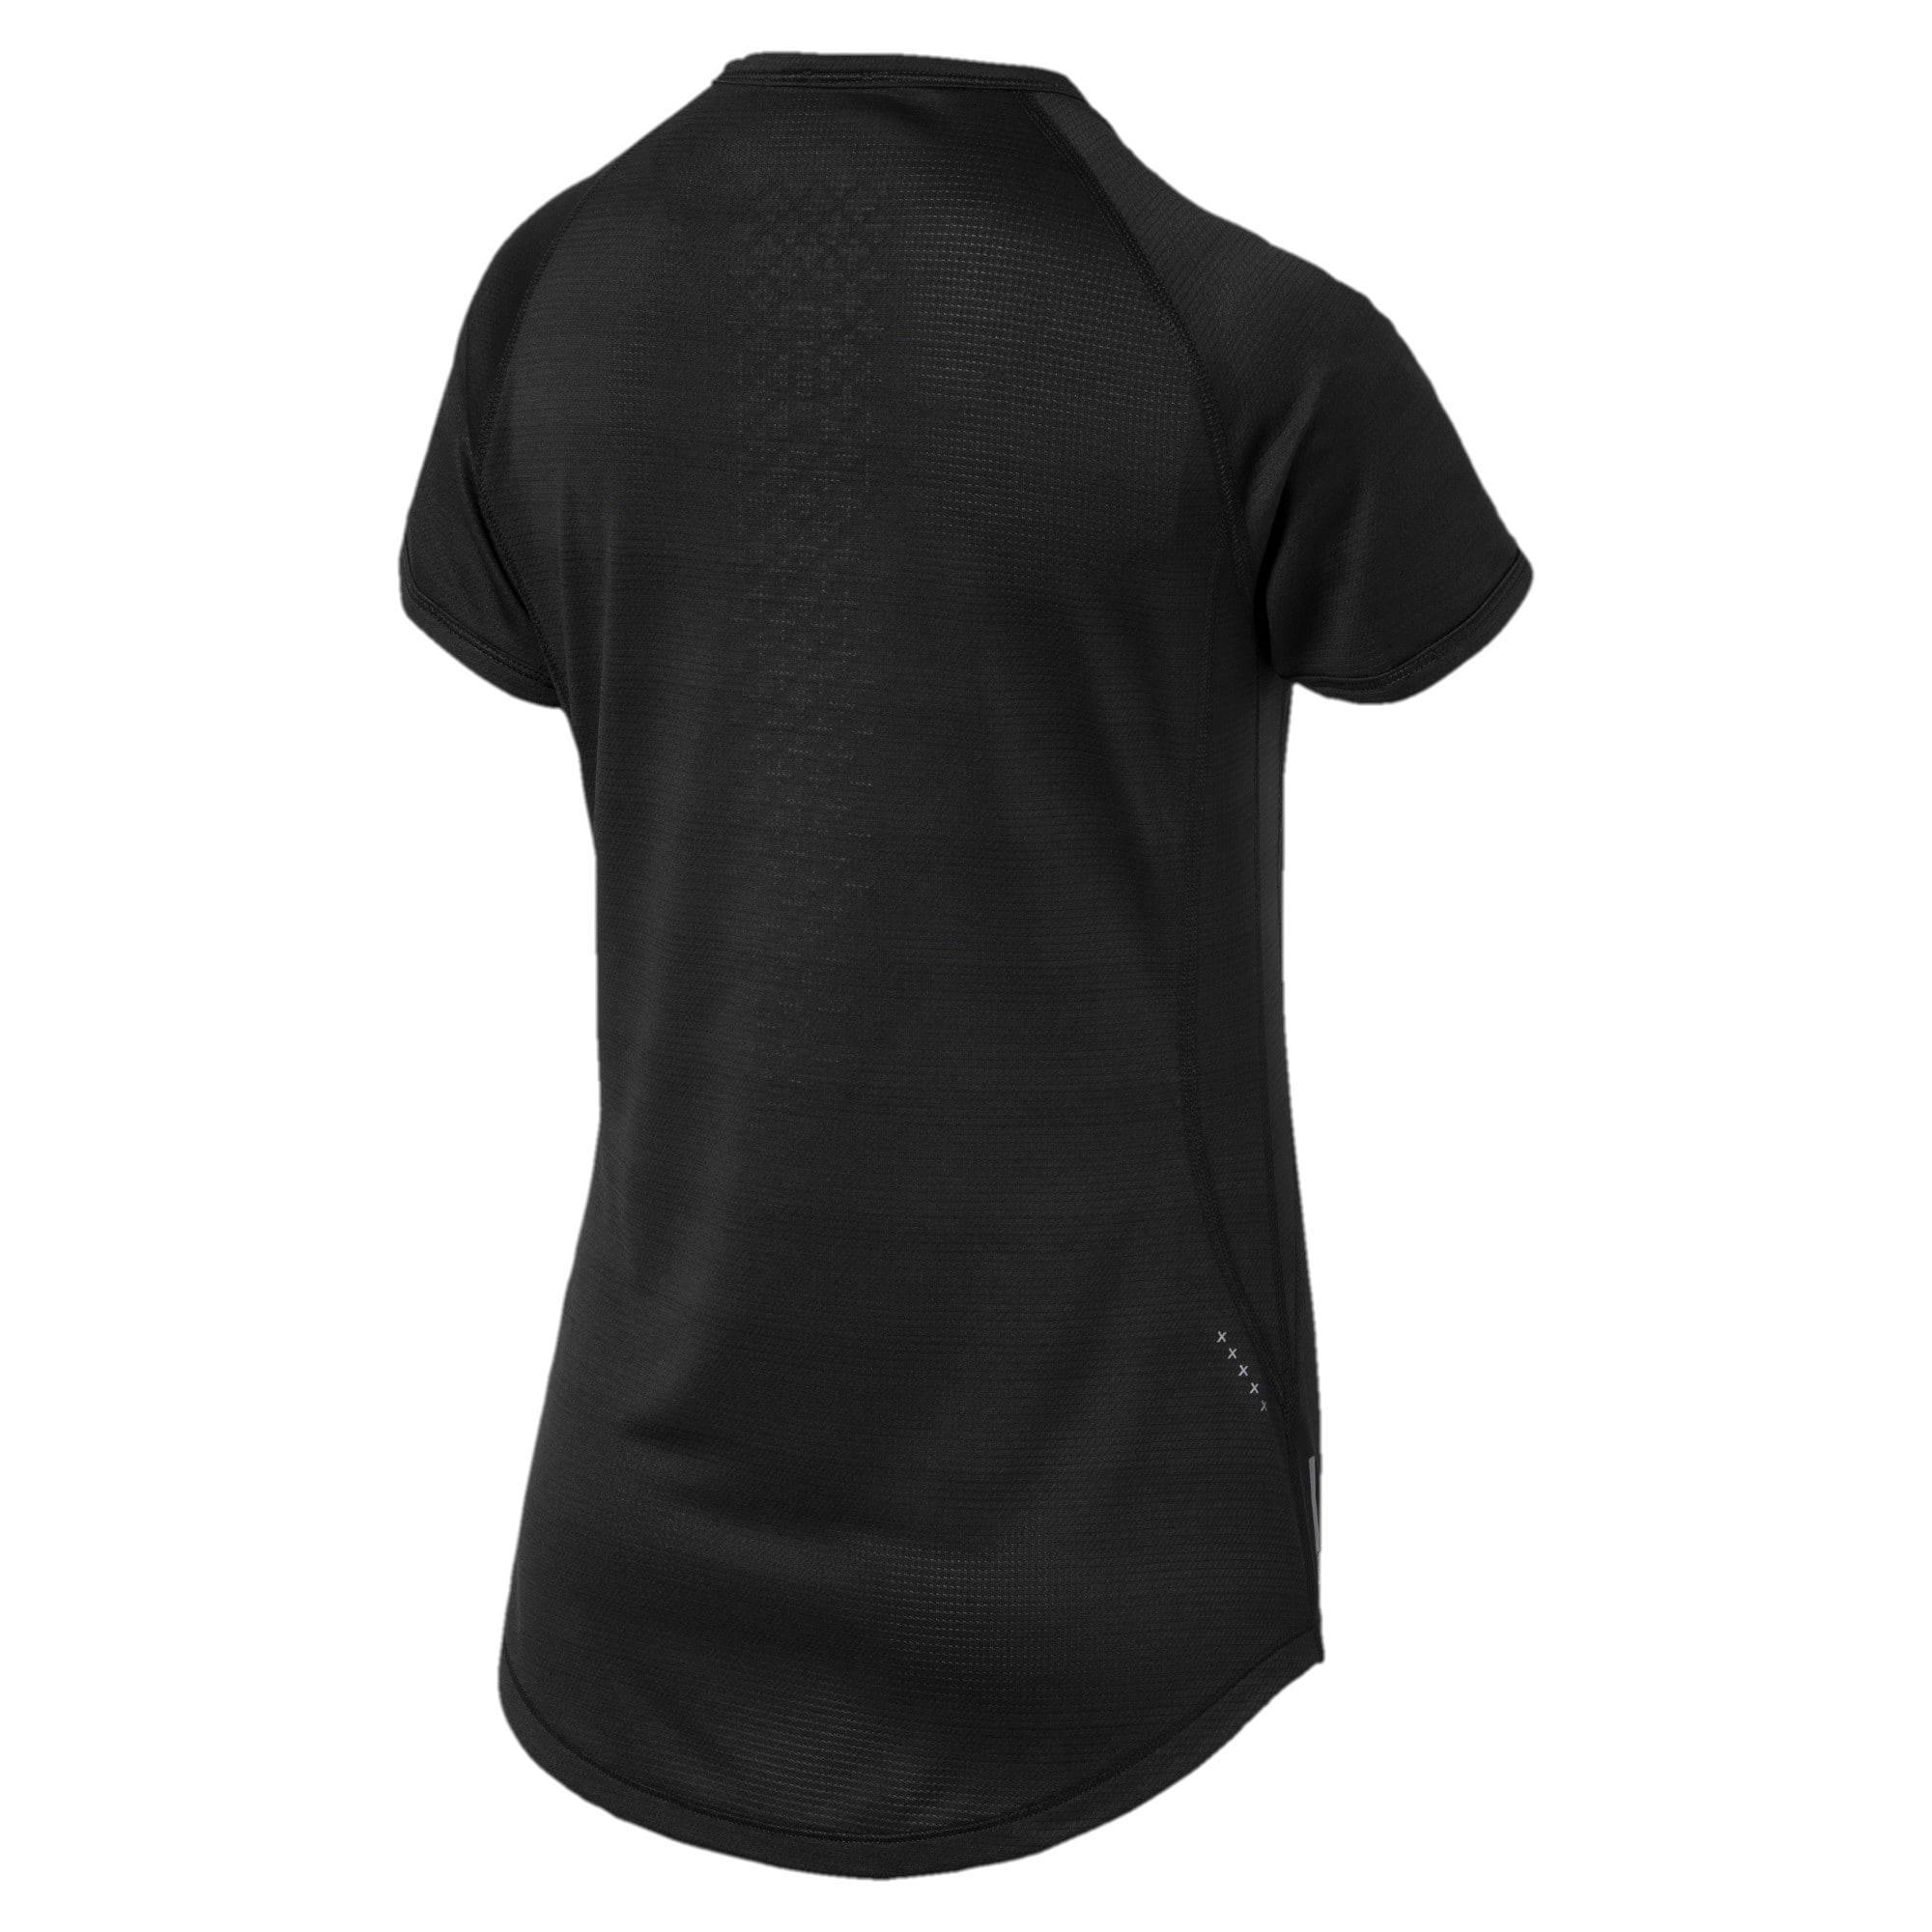 Thumbnail 5 of Get Fast Thermo-R+ Women's Tee, Puma Black, medium-IND